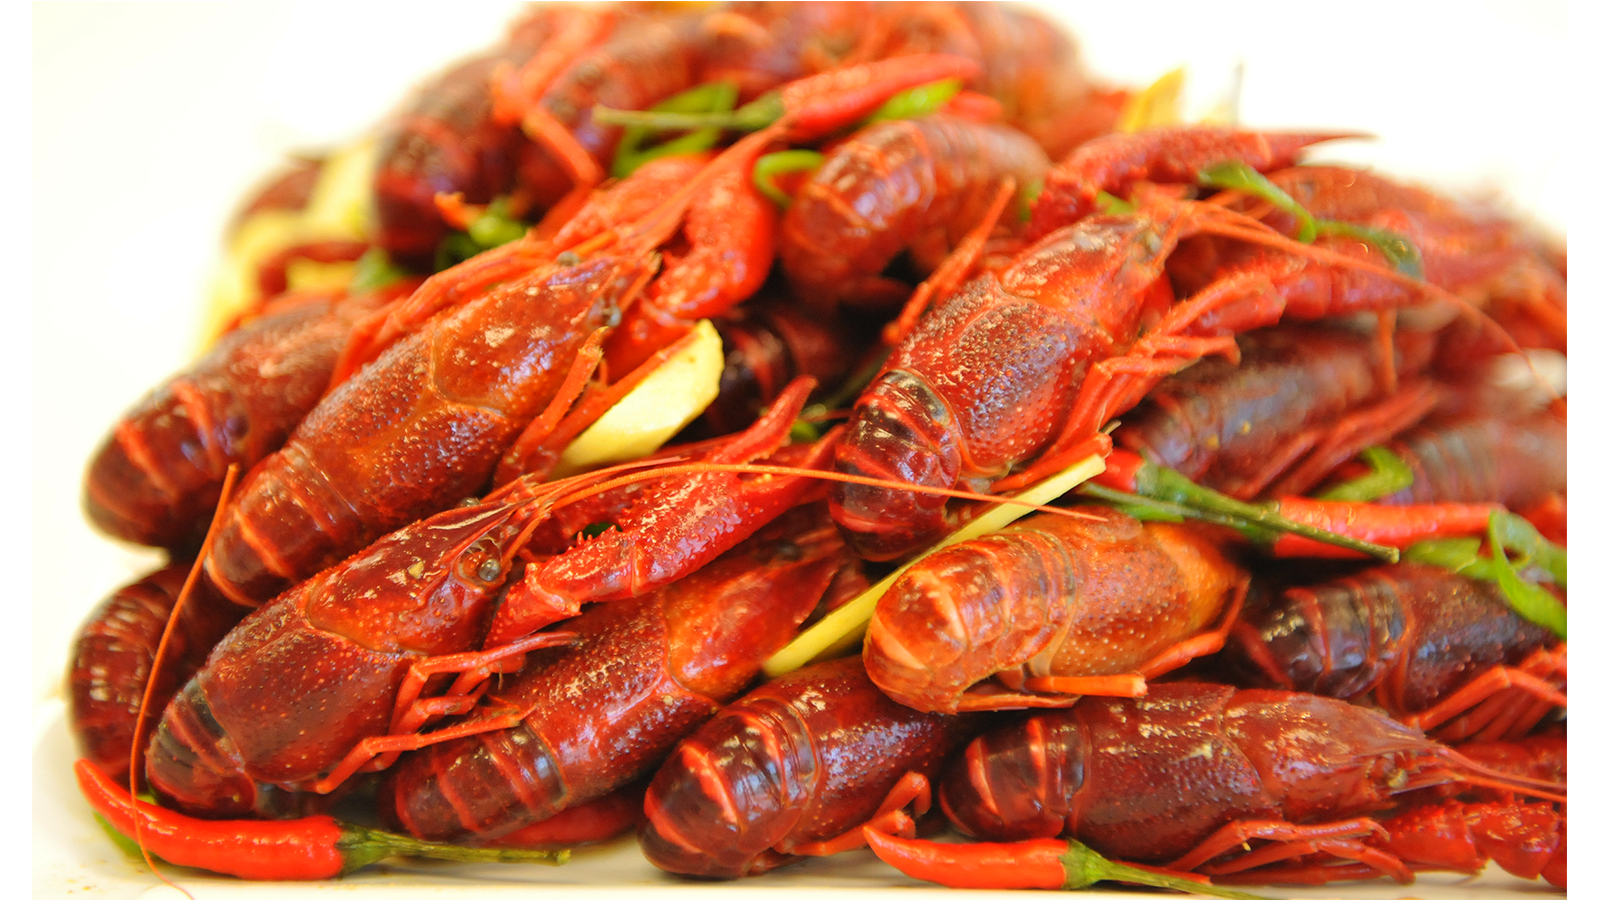 """Crawfish """"Boil"""" Food Styling for Advertising Campaign"""